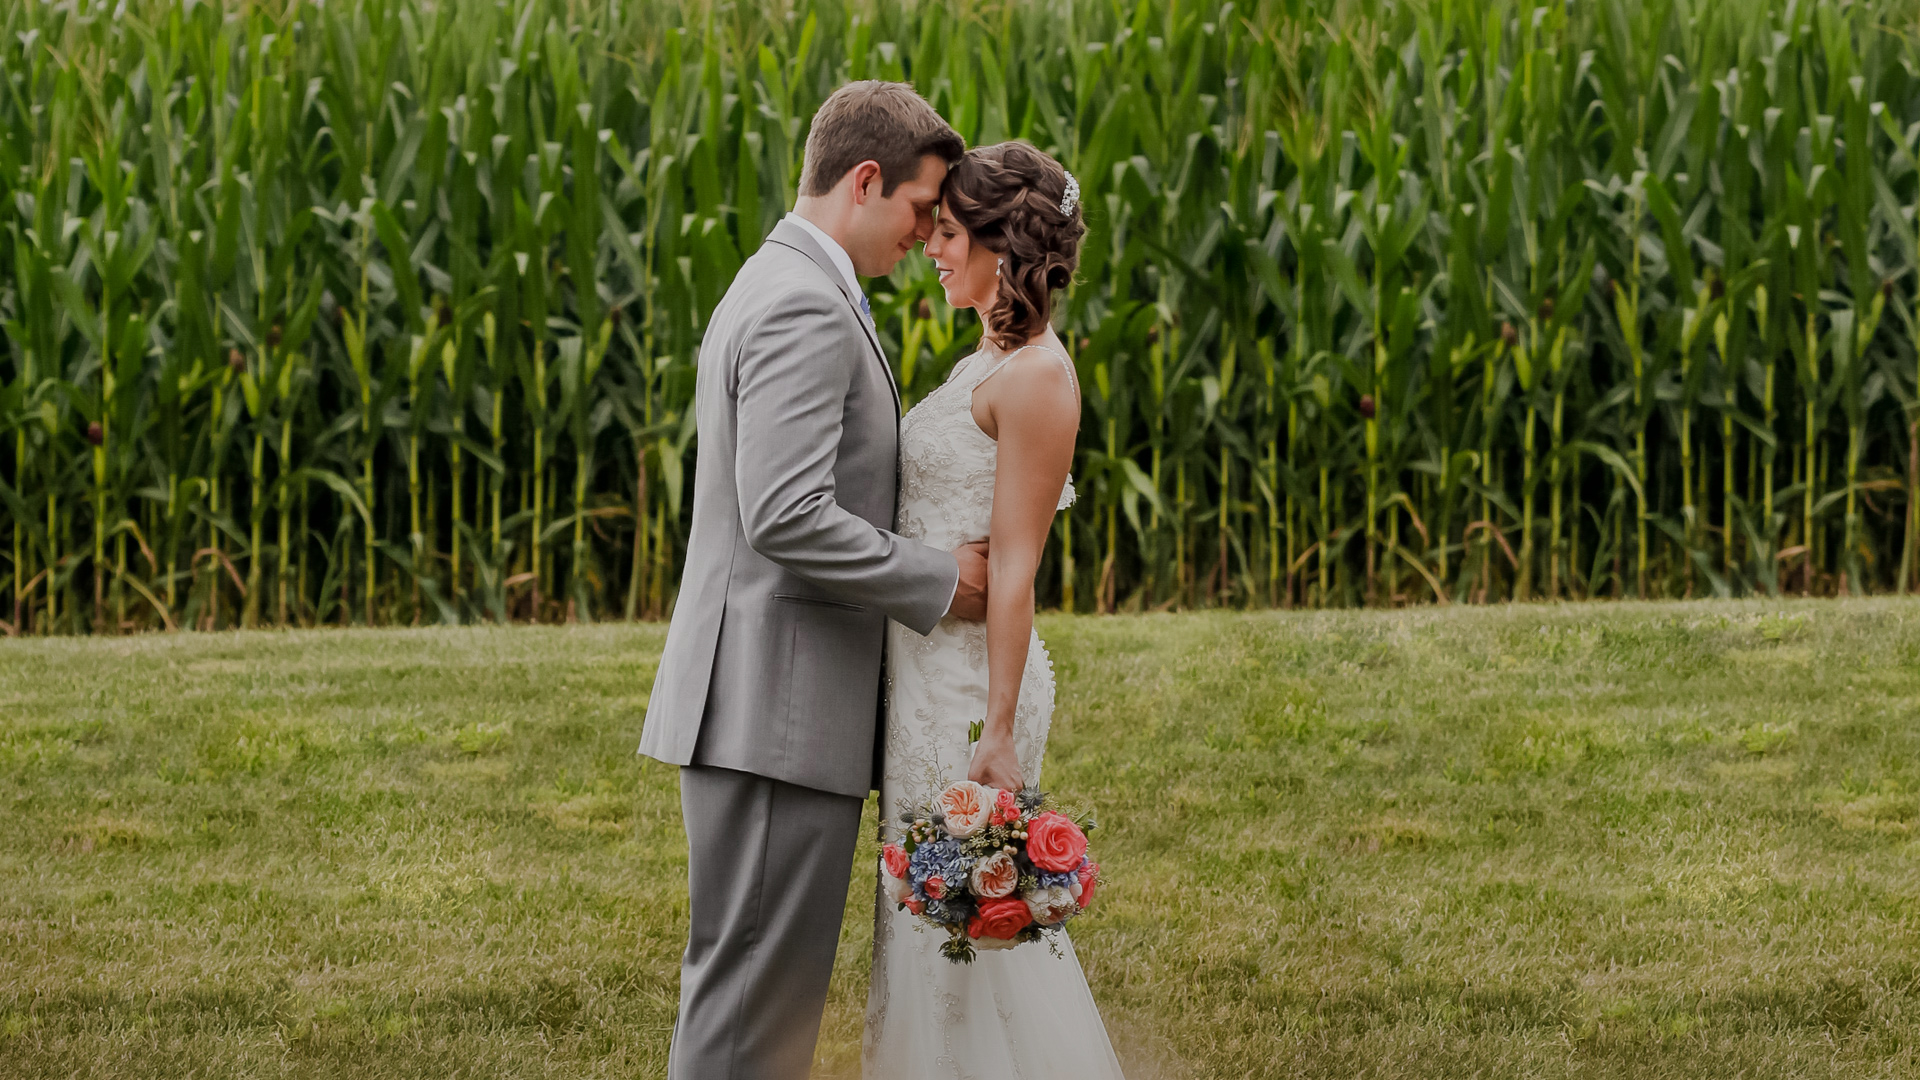 Wedding Photographer In Lehigh Valley Pa George Street Photo